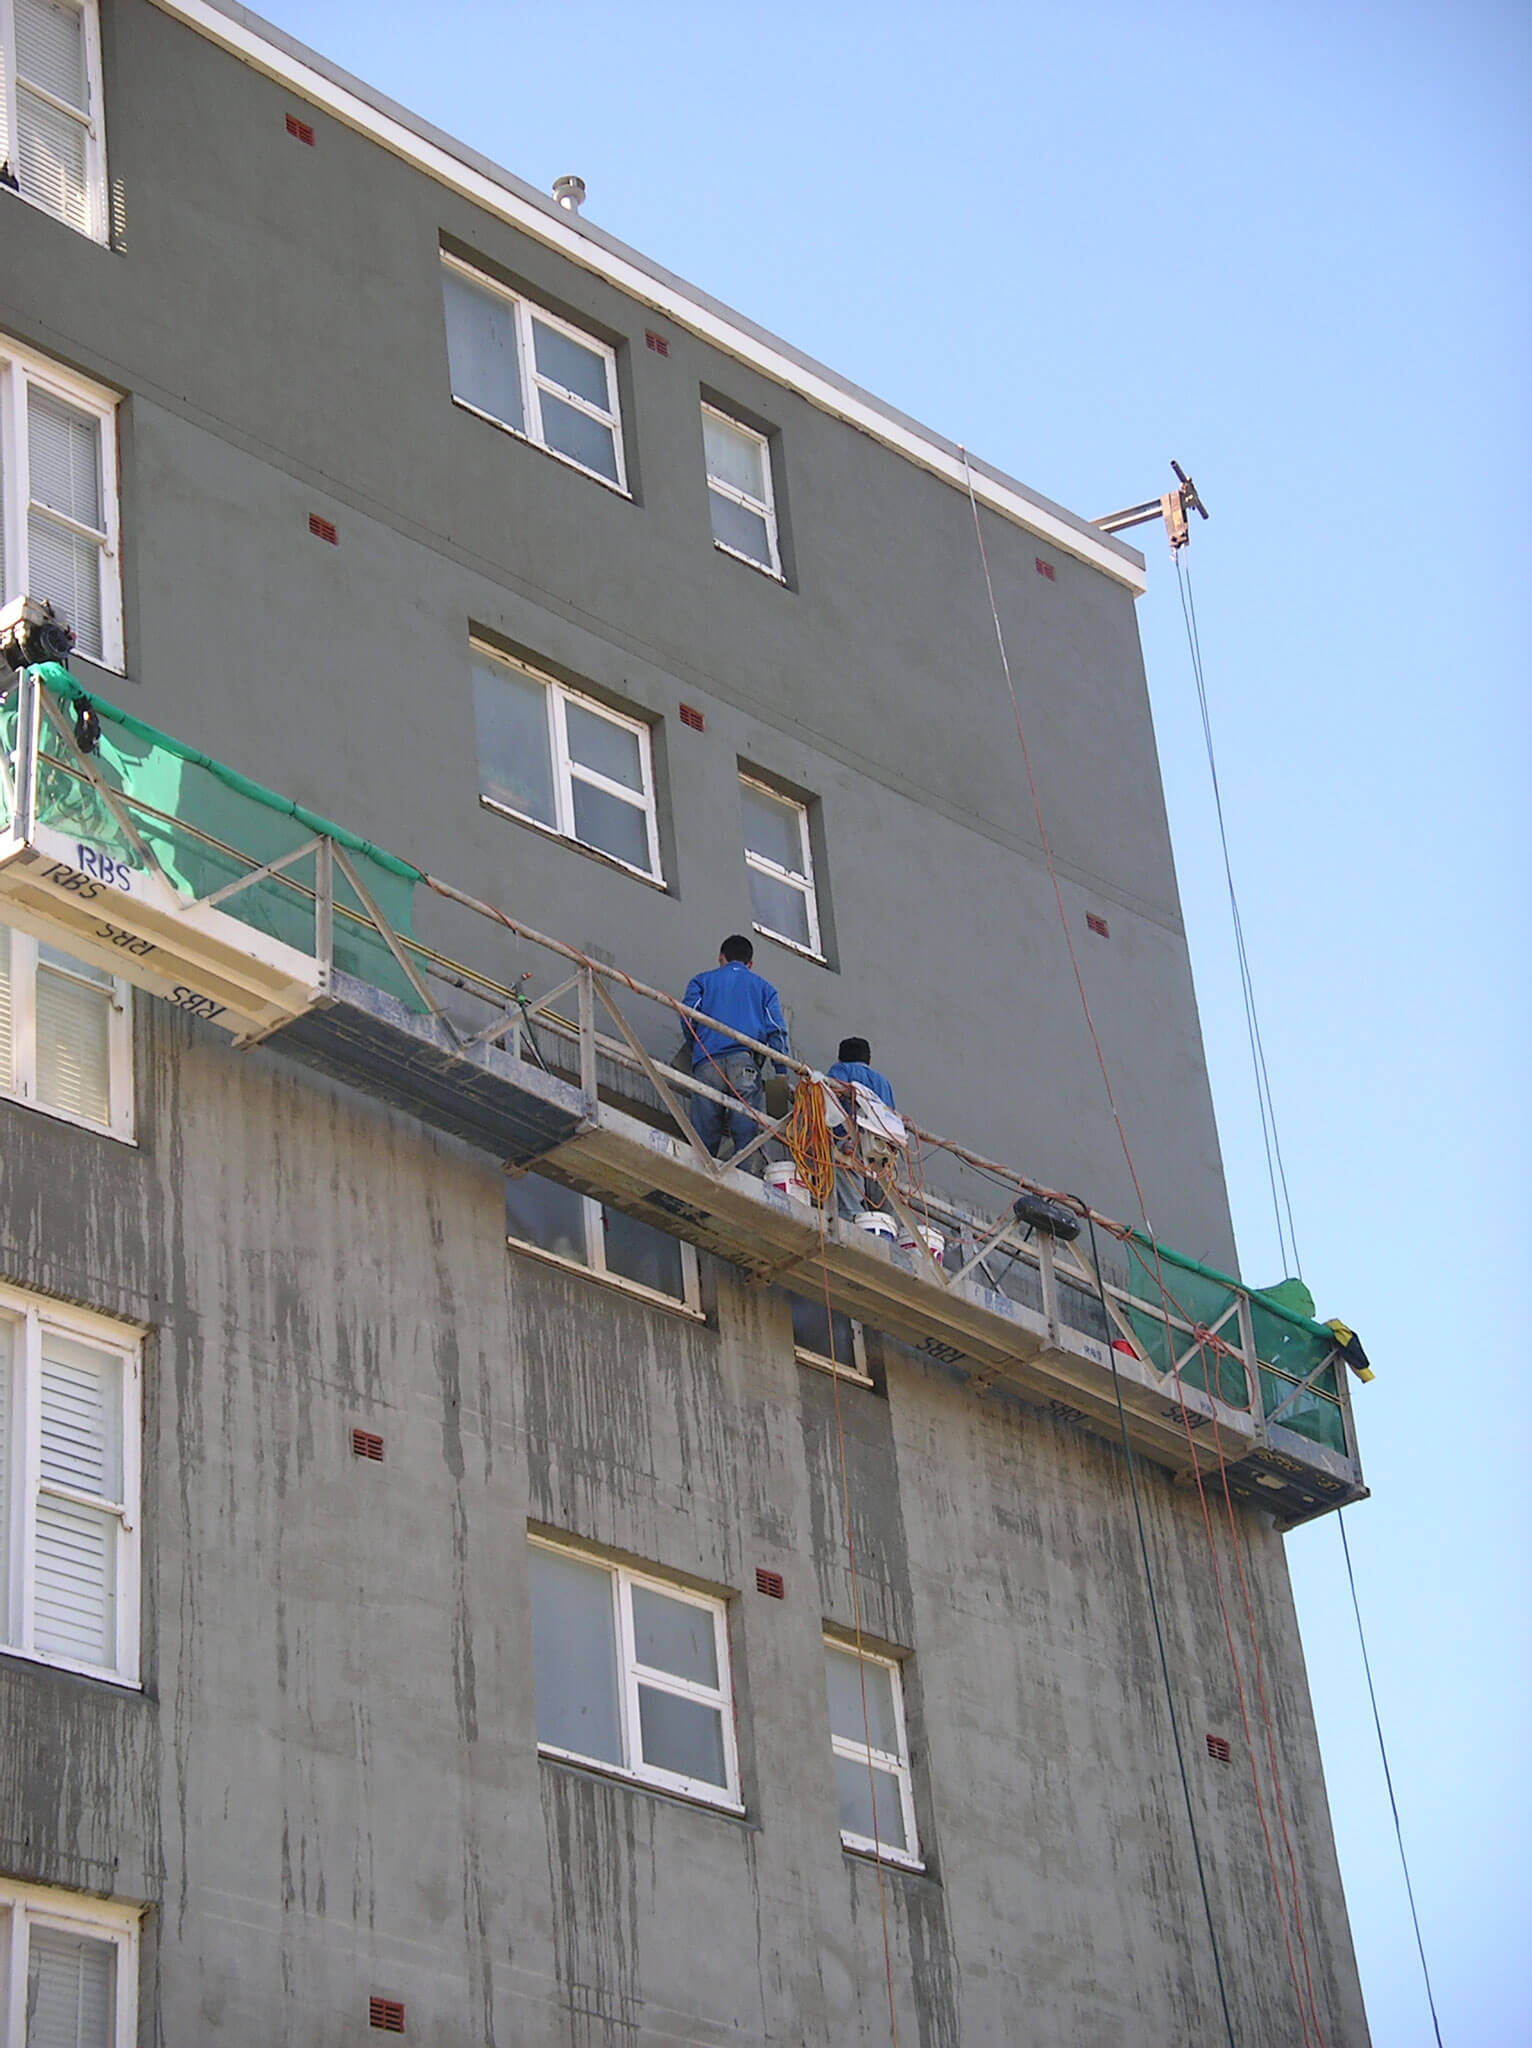 Builder At Scaffolding Plastering Wall - Structural Repair - Remedial Building Services